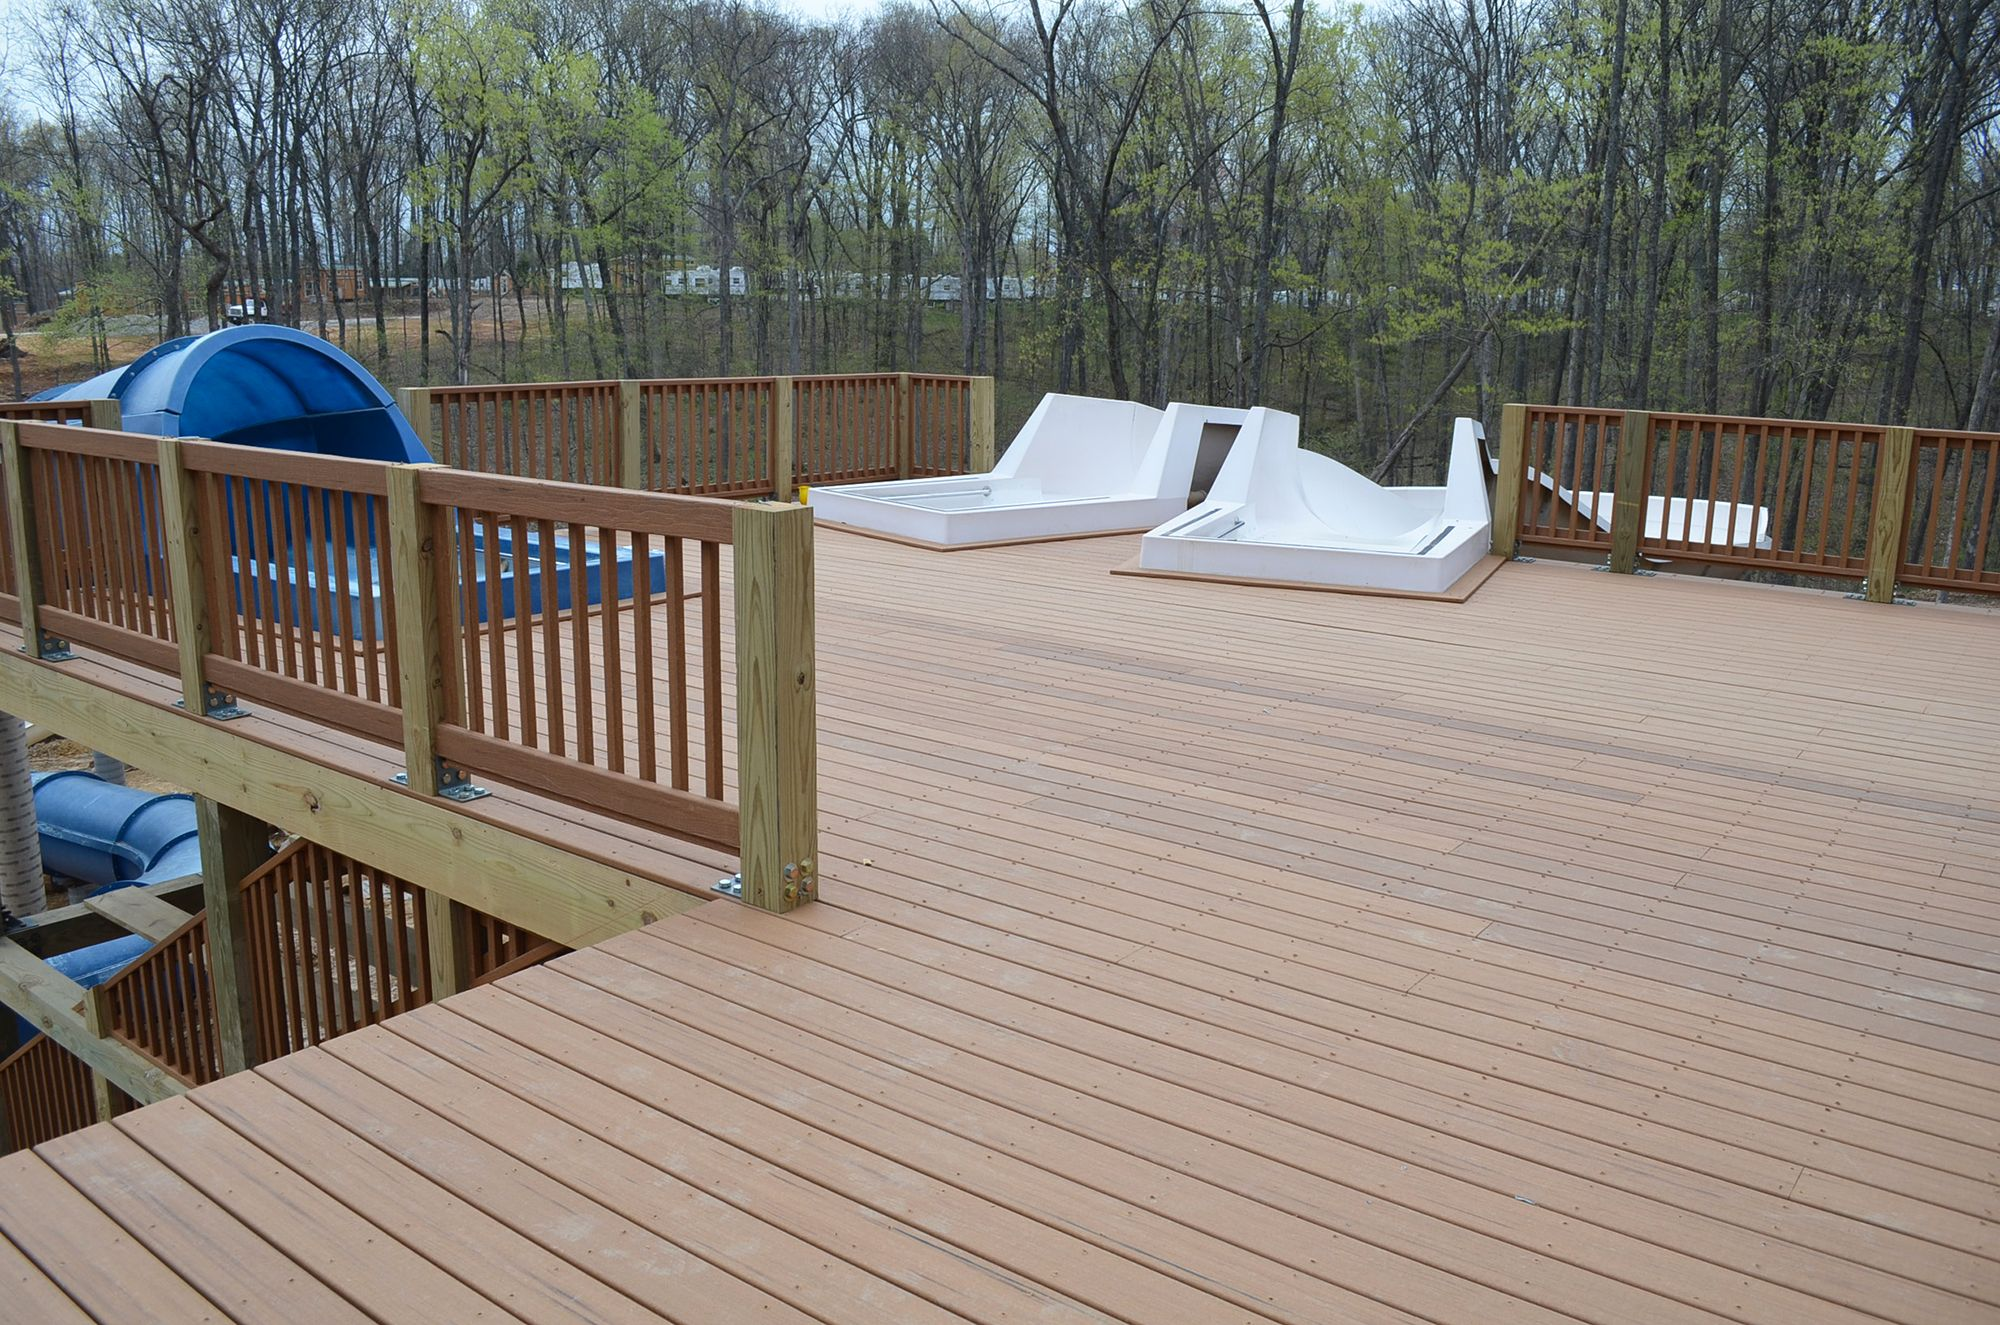 Privacy Fence Of Wpc Deck Material Fire Rated Outdoor Wooden Decking Anti Corrosive